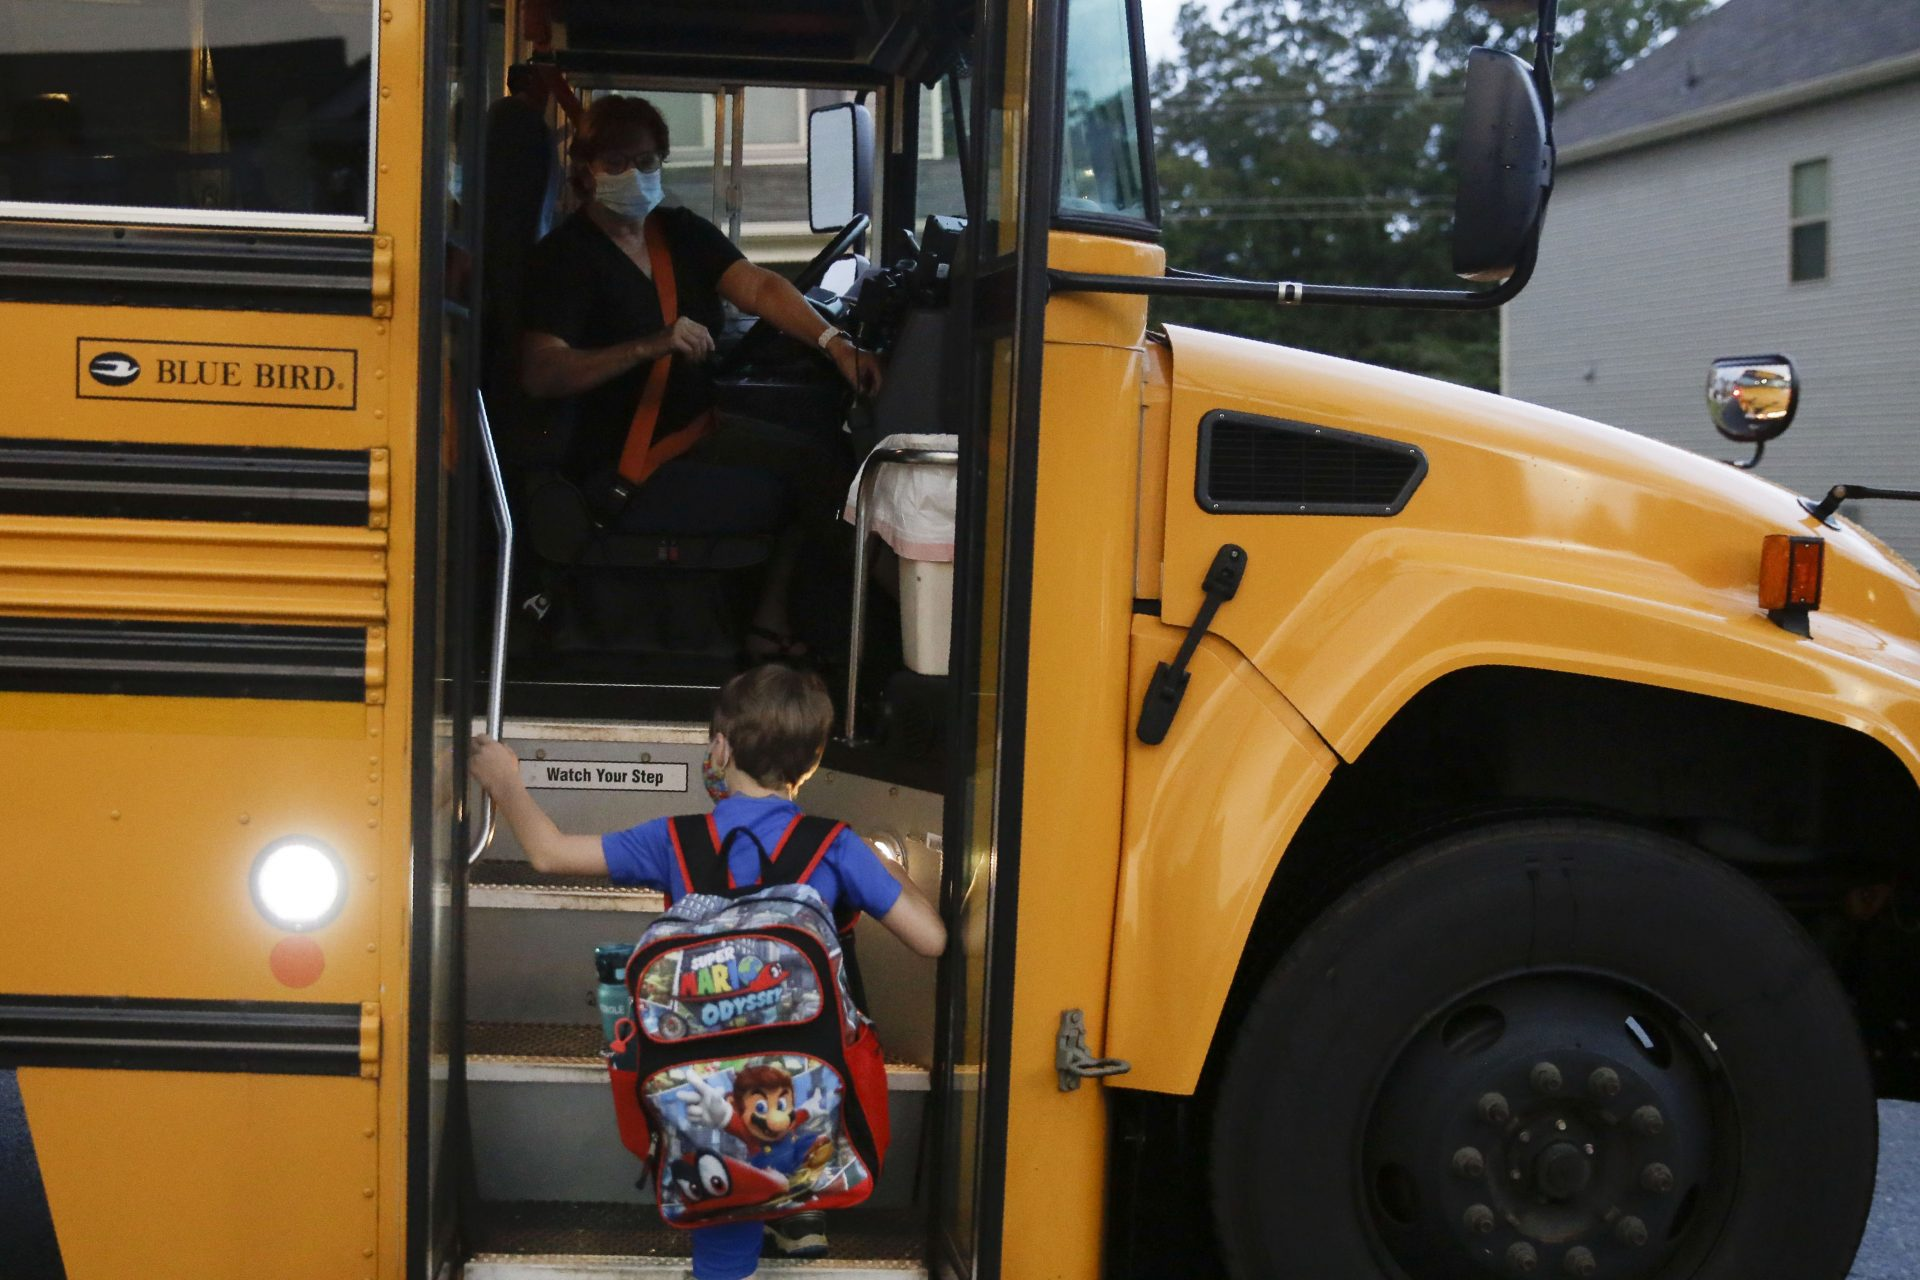 Paul Adamus, 7, climbs the stairs of a bus before the fist day of school on Monday, Aug. 3, 2020, in Dallas, Ga. Adamus is among tens of thousands of students in Georgia and across the nation who were set to resume in-person school Monday for the first time since March.